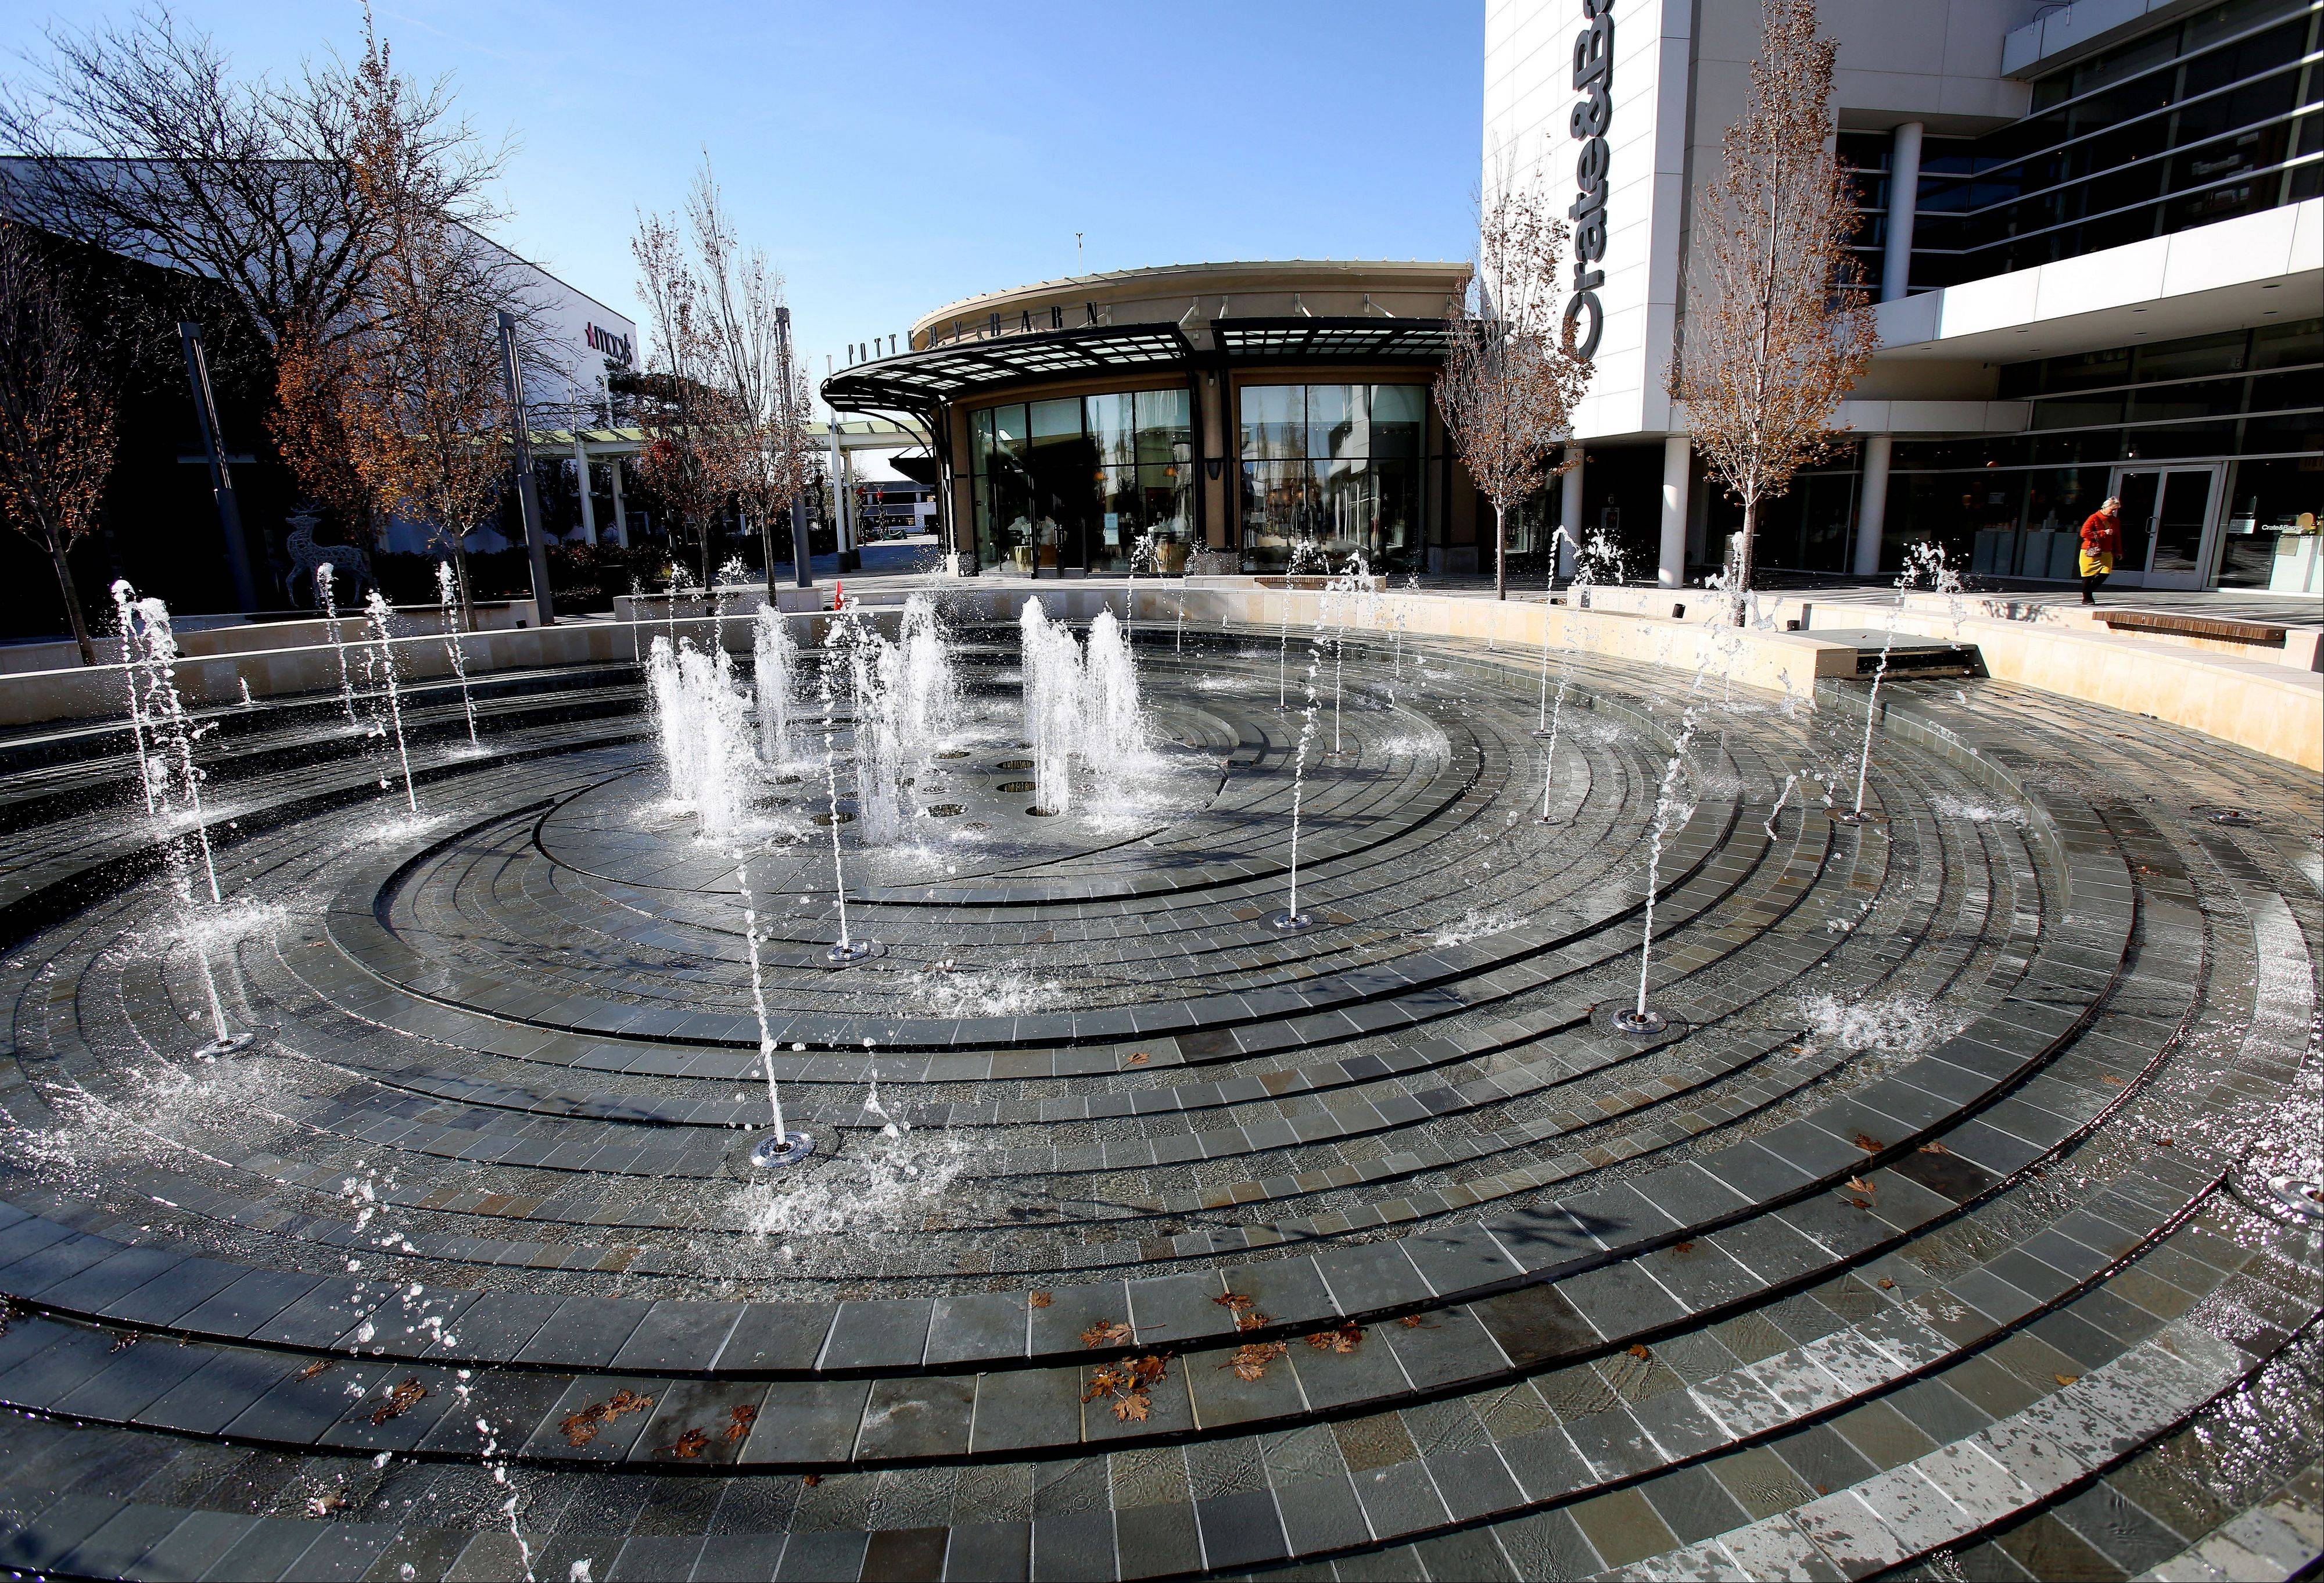 Oakbrook Center officials say the focal point of the newly renovated mall is an all-weather vortex fountain near Crate & Barrel and Macy's.